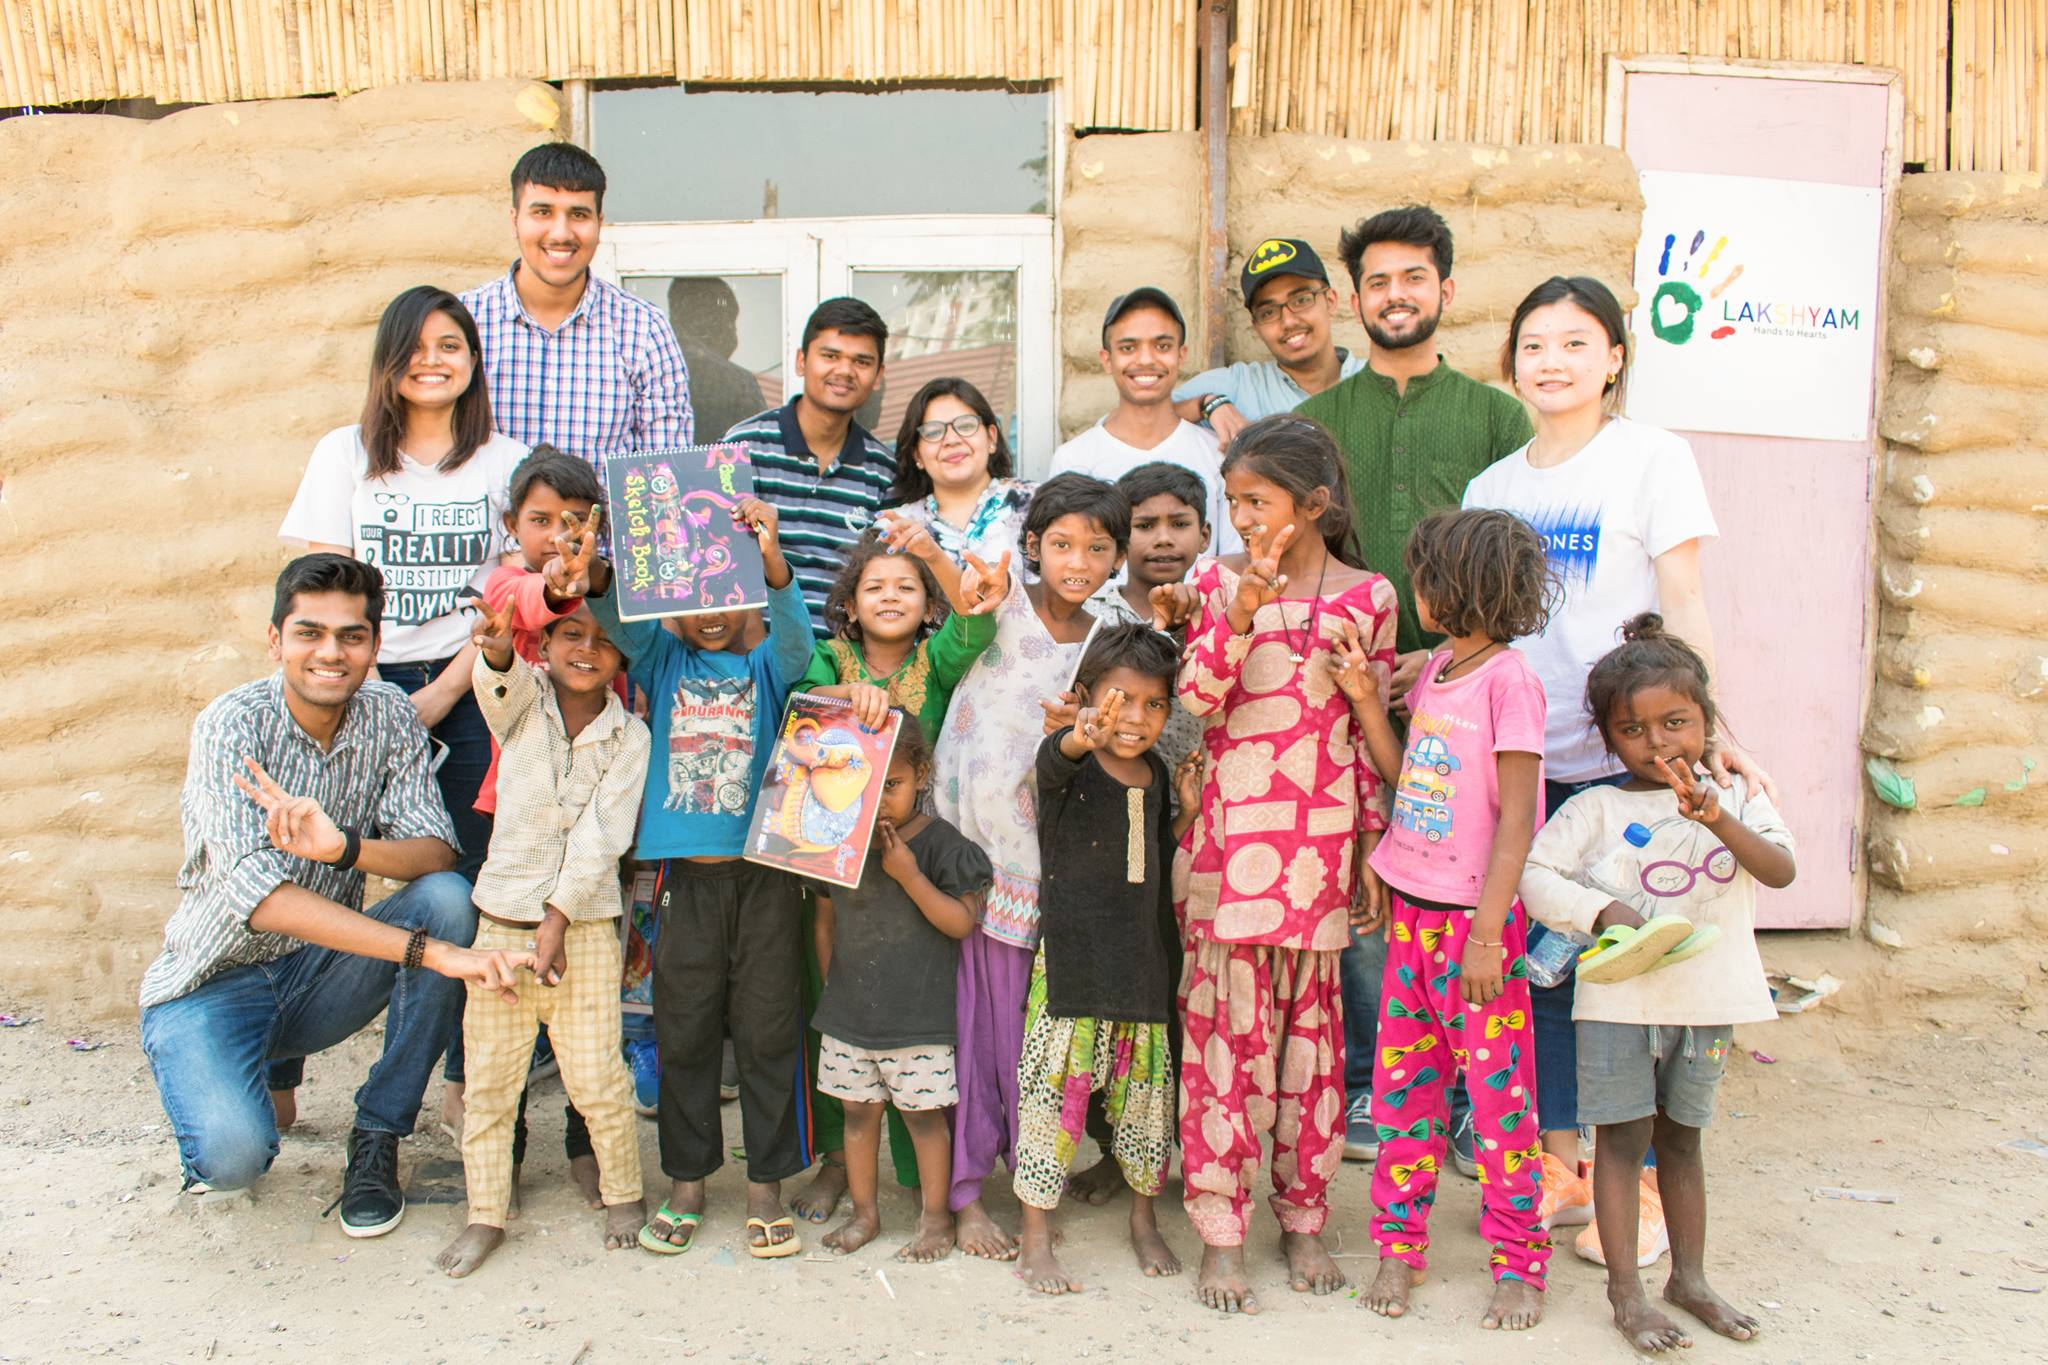 GPF interns with Indian children living in slums